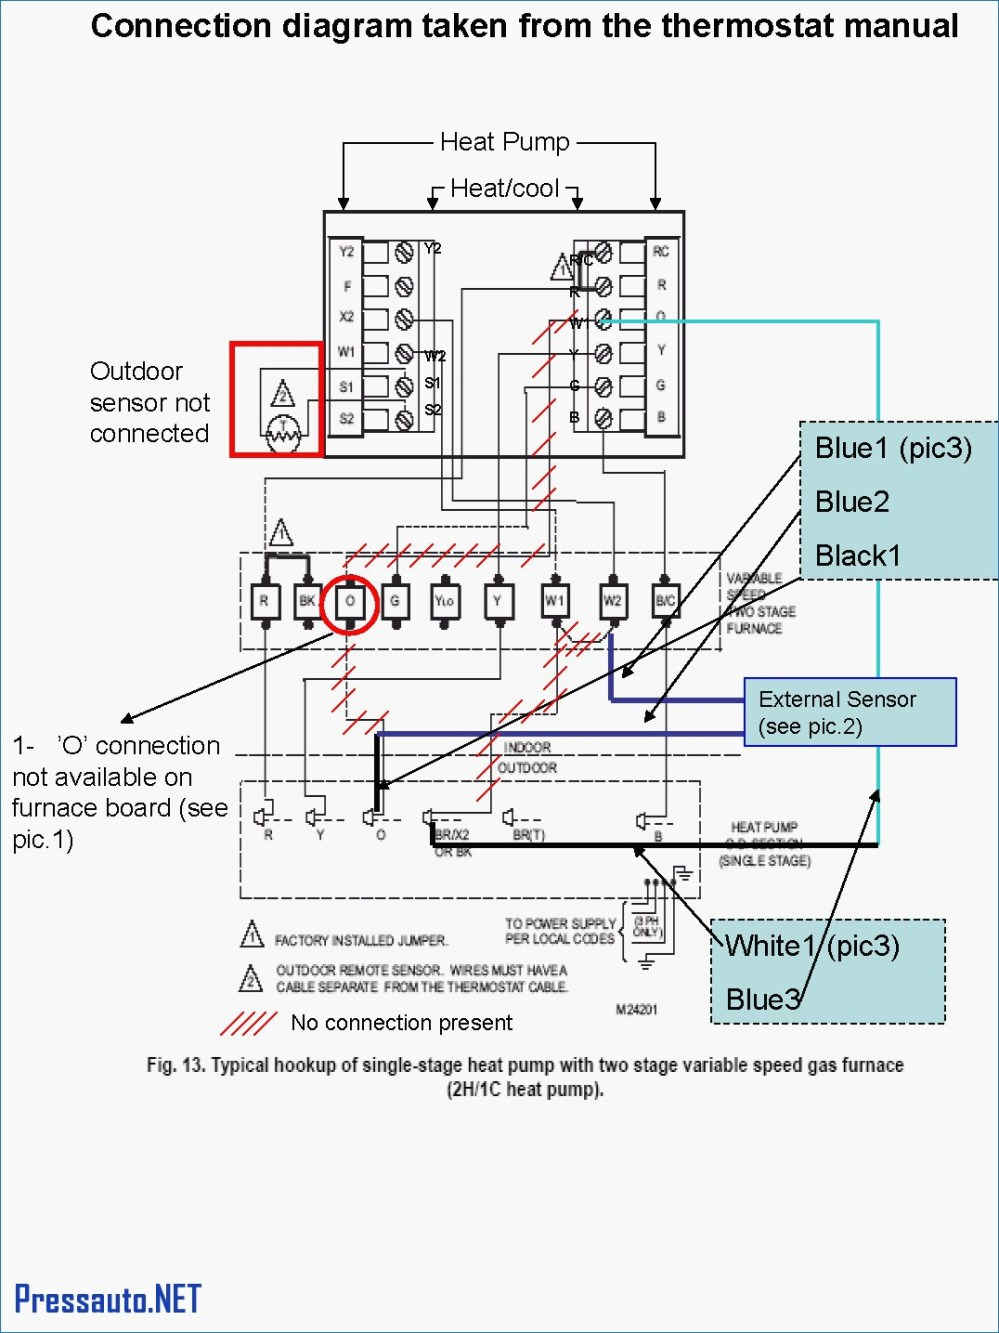 medium resolution of pool heat pump wiring diagram pool heat pump wiring diagram fresh trane heat pump troubleshooting